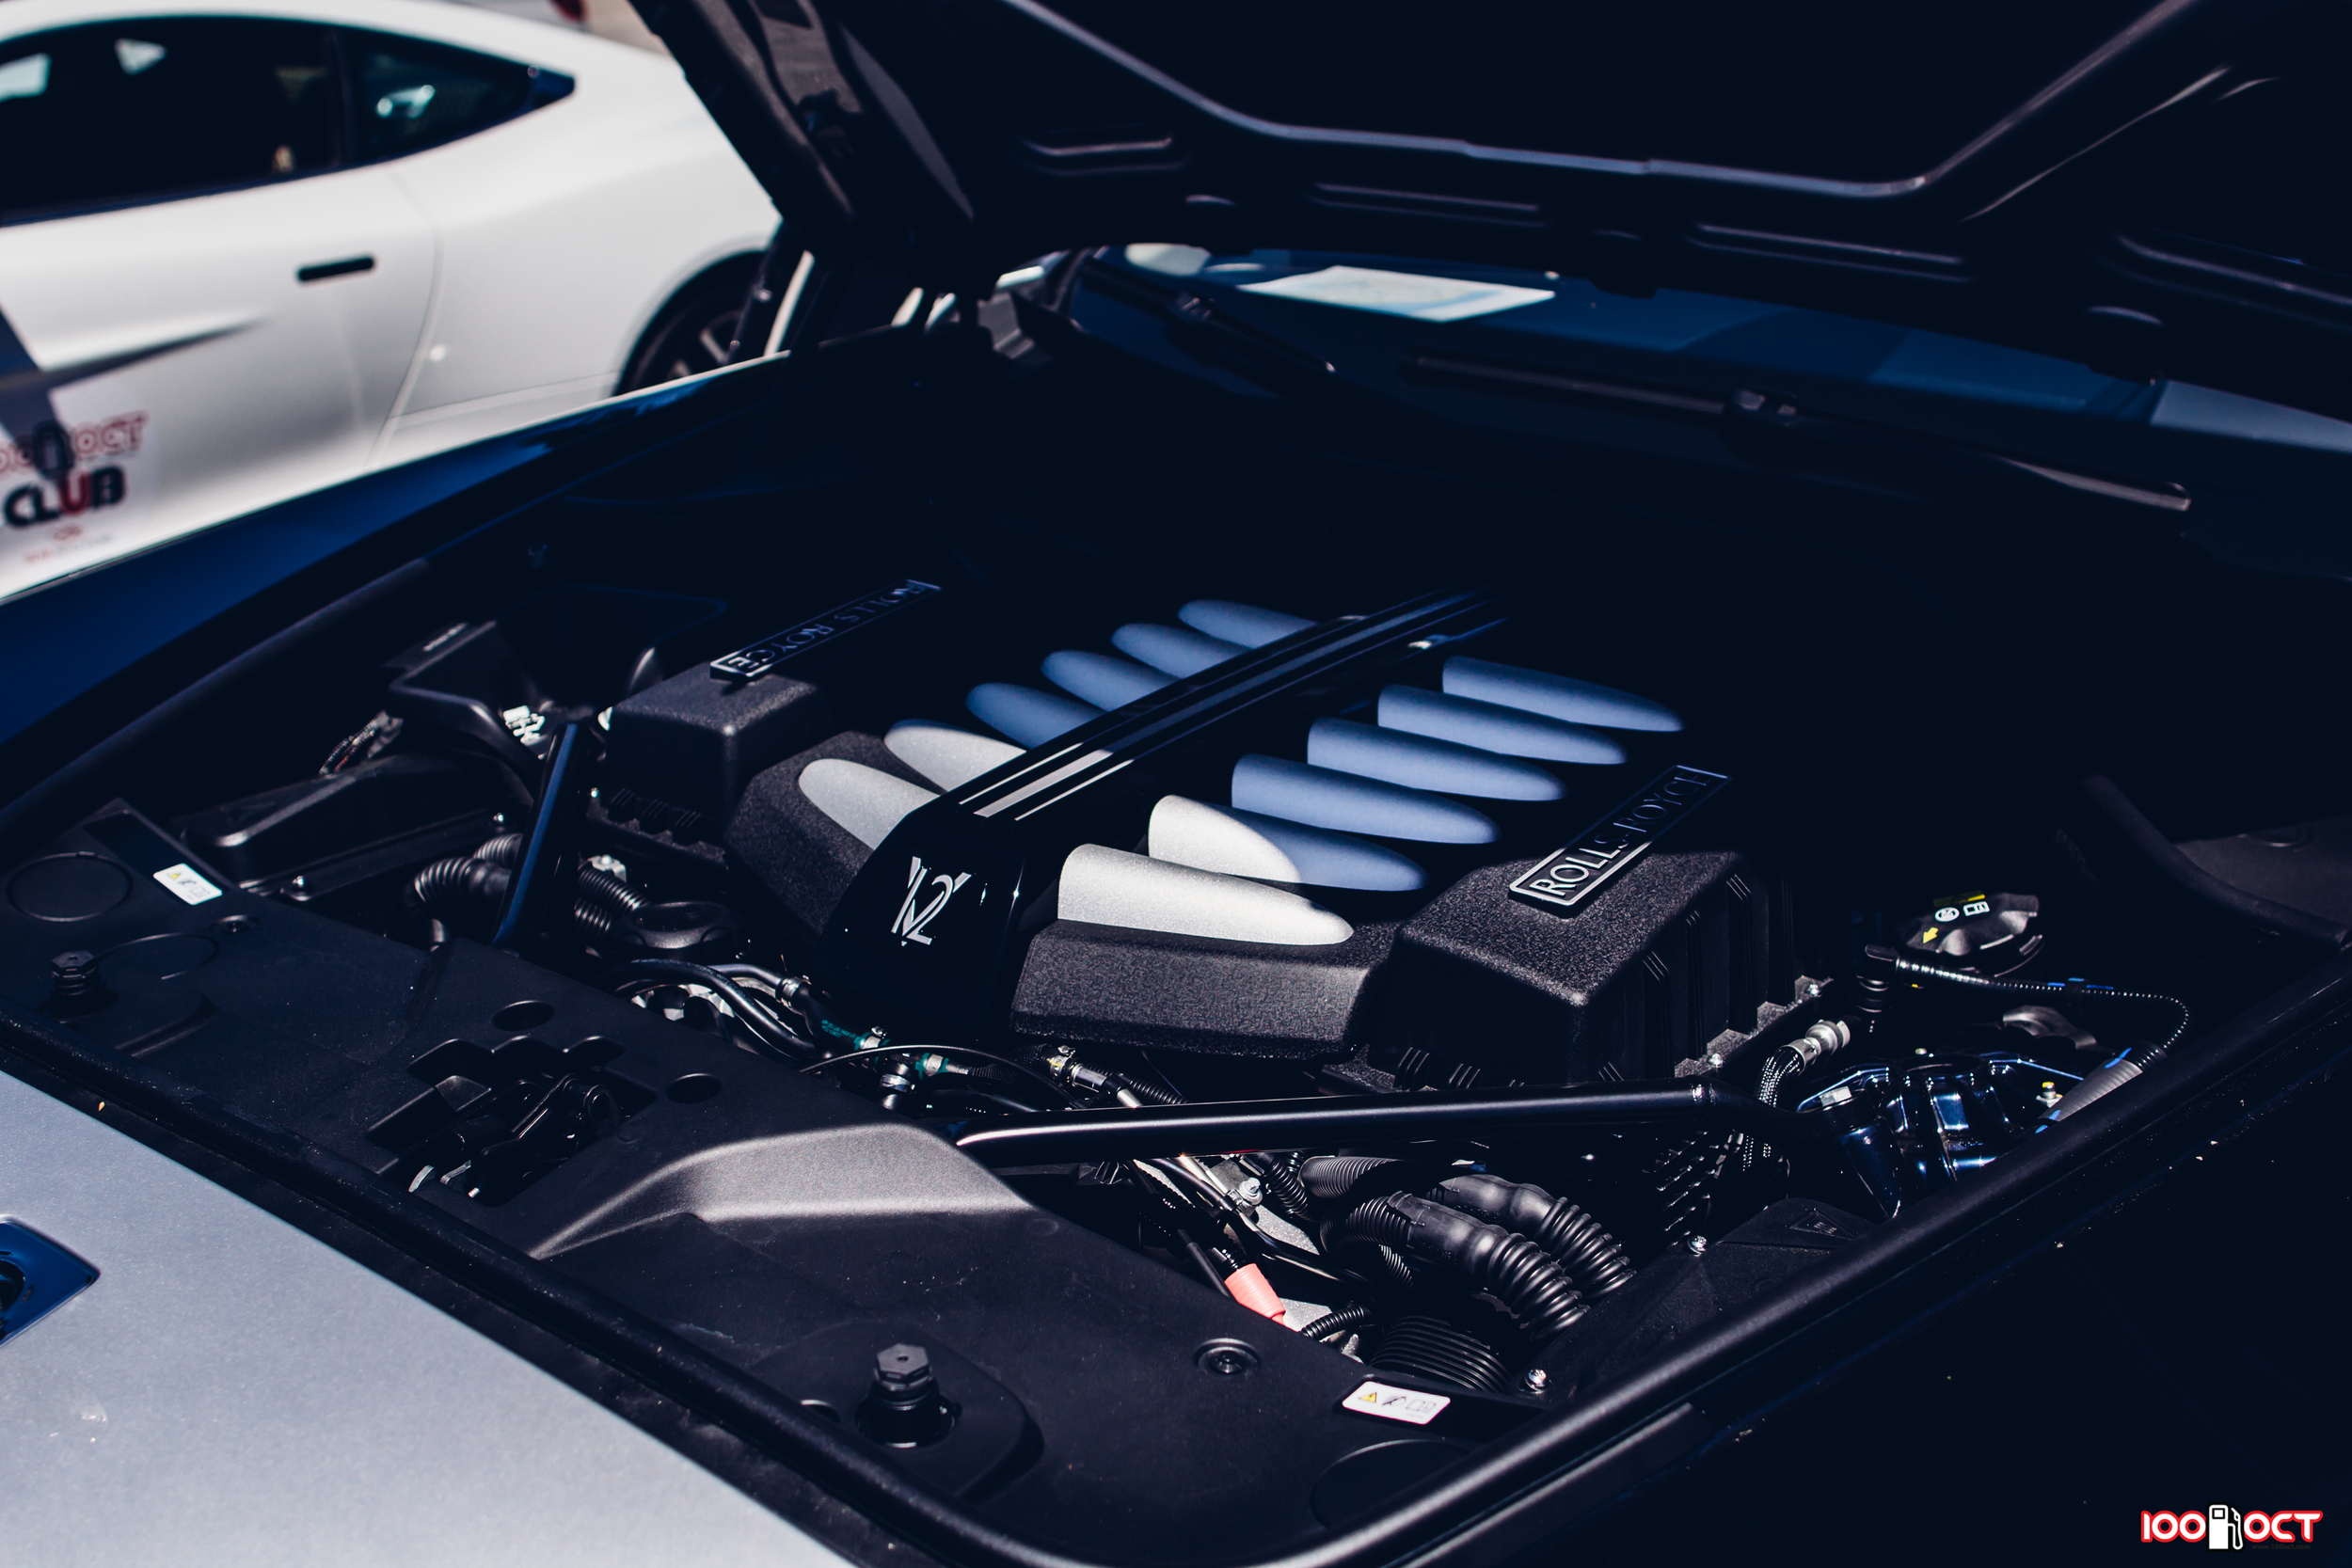 The magnificent twin-turbo 6.6 liter V12 engine putting out 624 hp and 590 lb ft of torque. Credits: Dayne Dyer